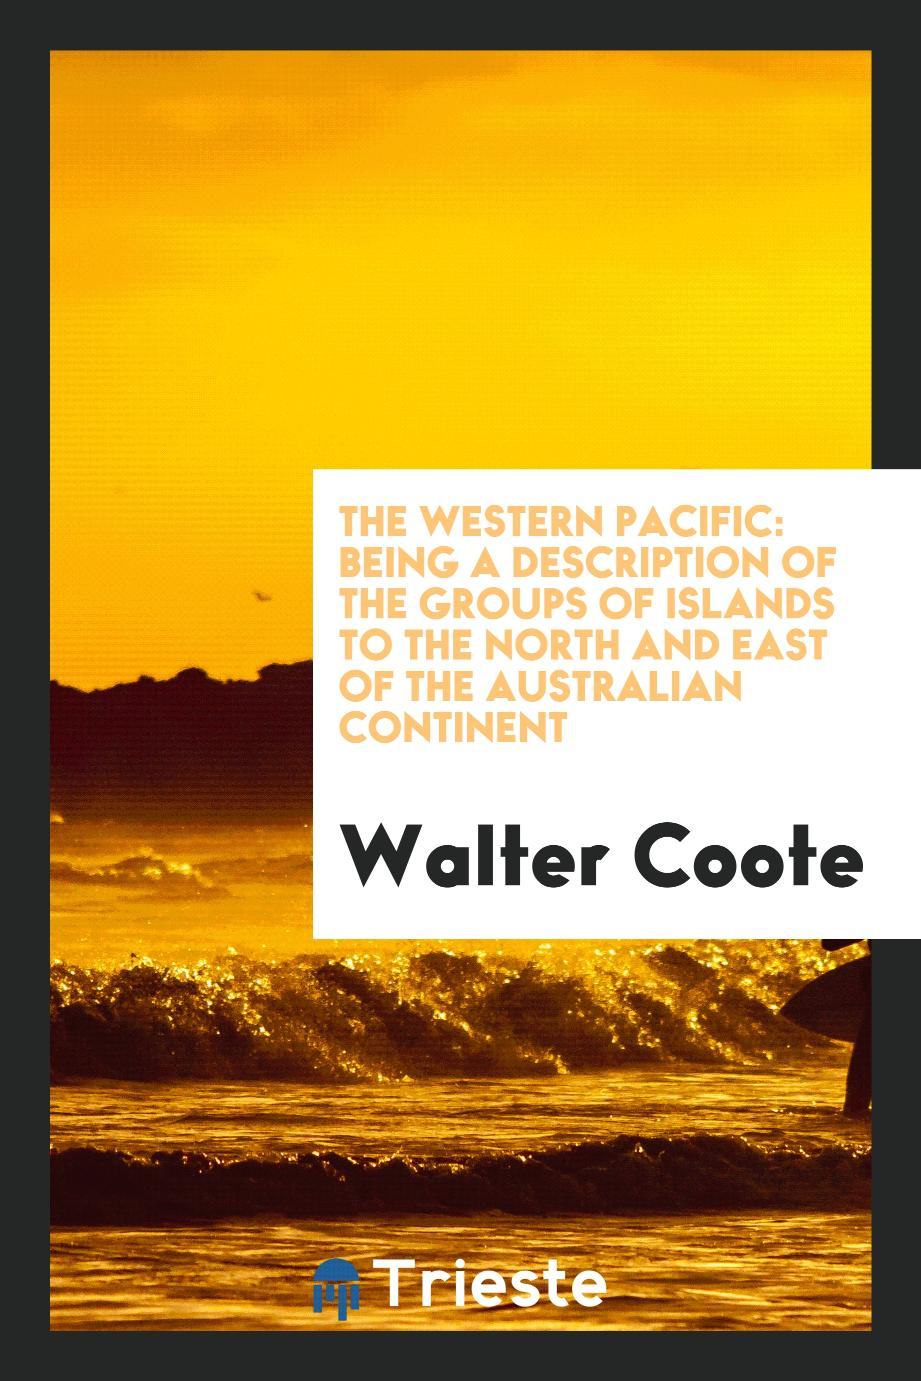 The western Pacific: being a description of the groups of islands to the north and east of the Australian continent